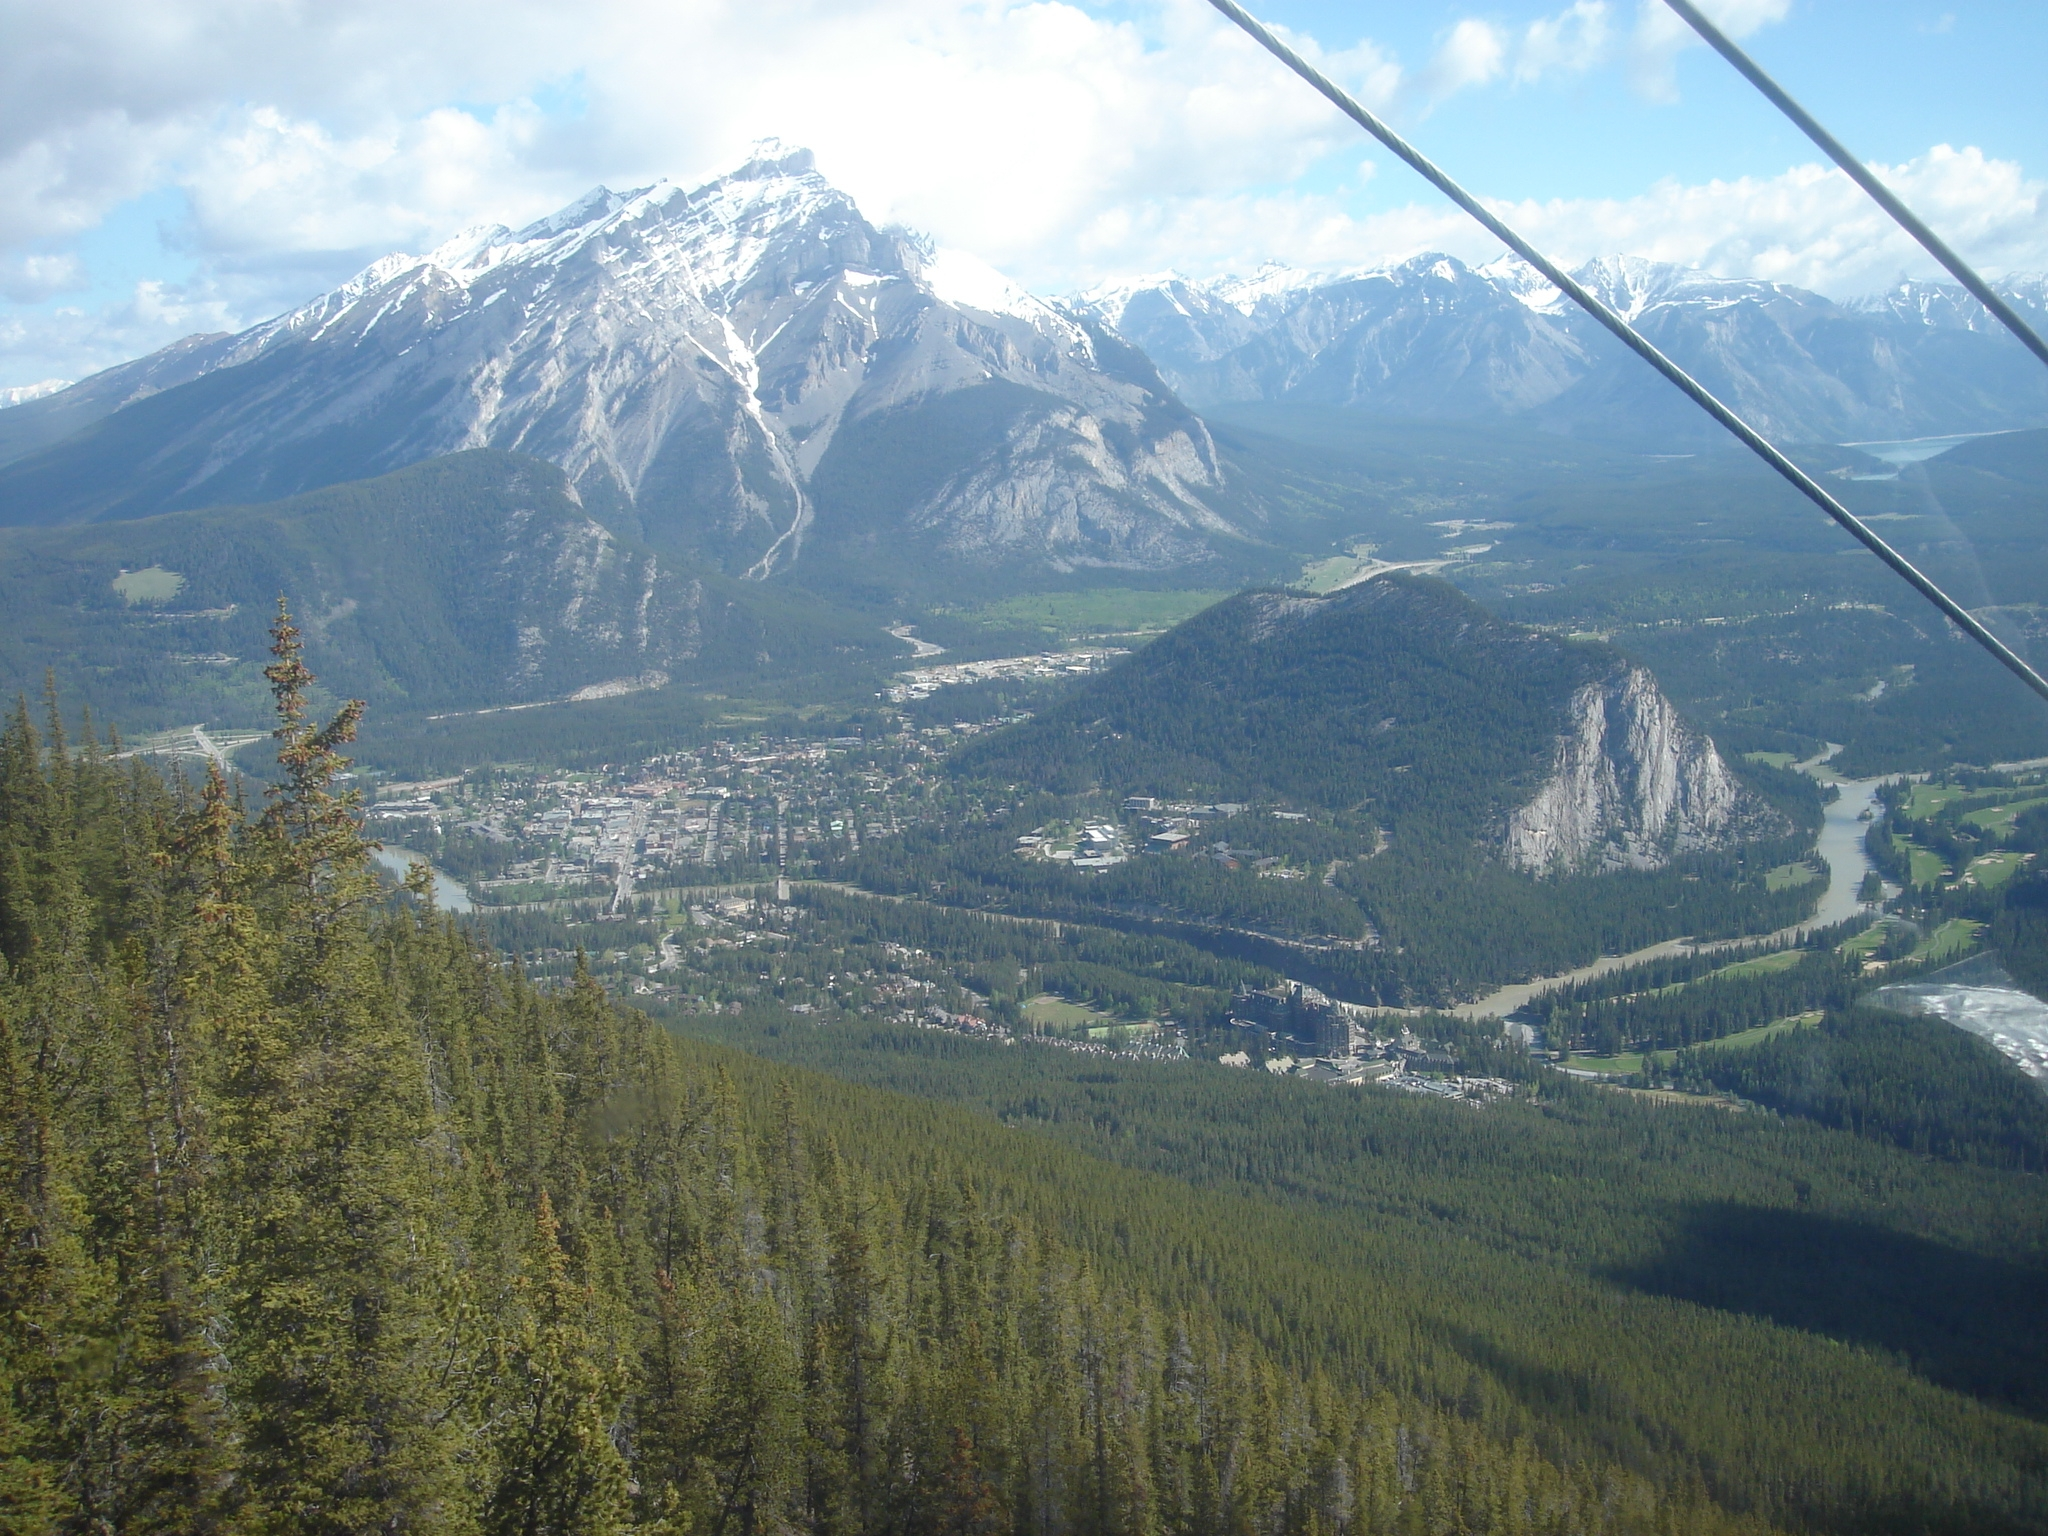 Banff from the Gondola excursion